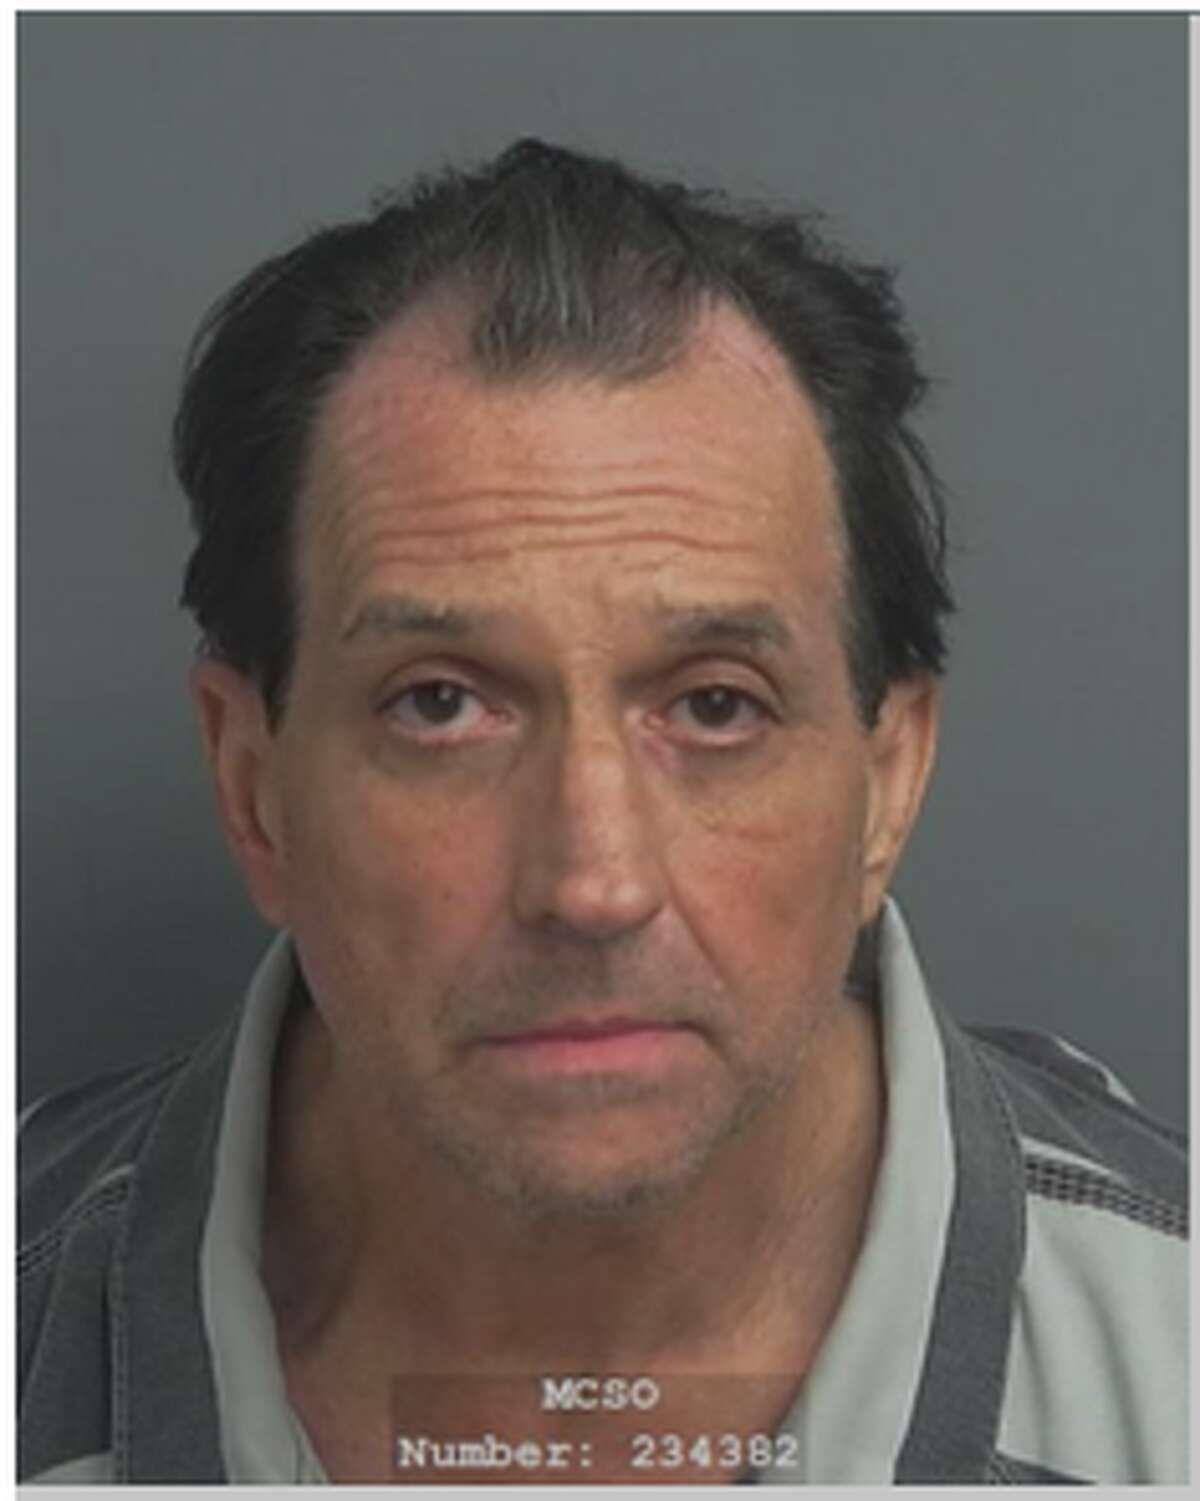 Robert Alan Cordray, 56, was sentenced to life in prison on July 16, 2019 following his conviction for stealing from a Conroe bank's ATMs in 2018.